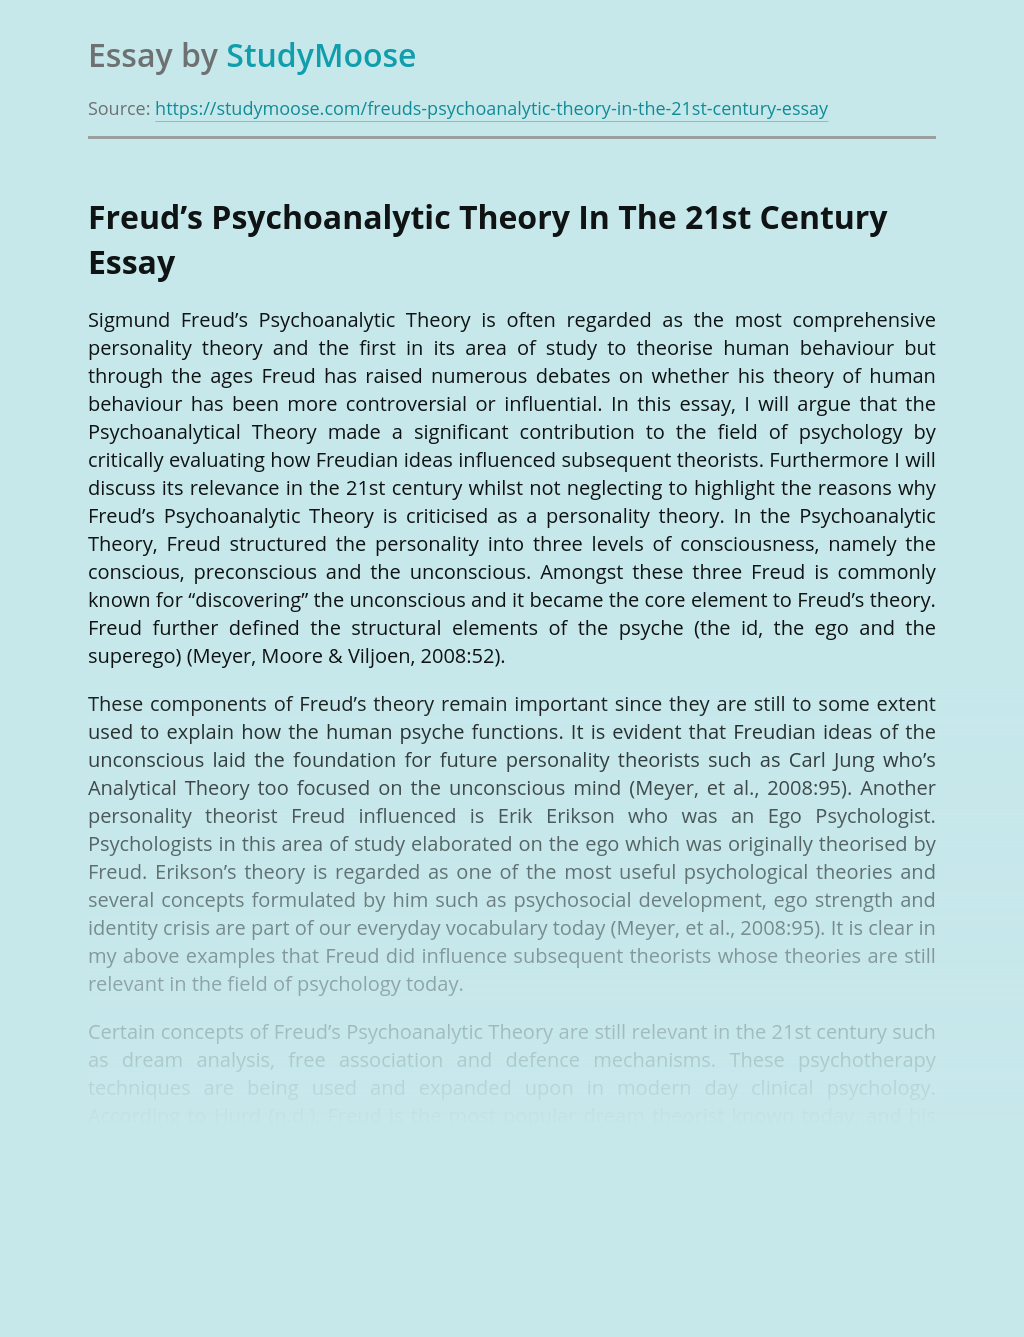 Freud's Psychoanalytic Theory In The 21st Century